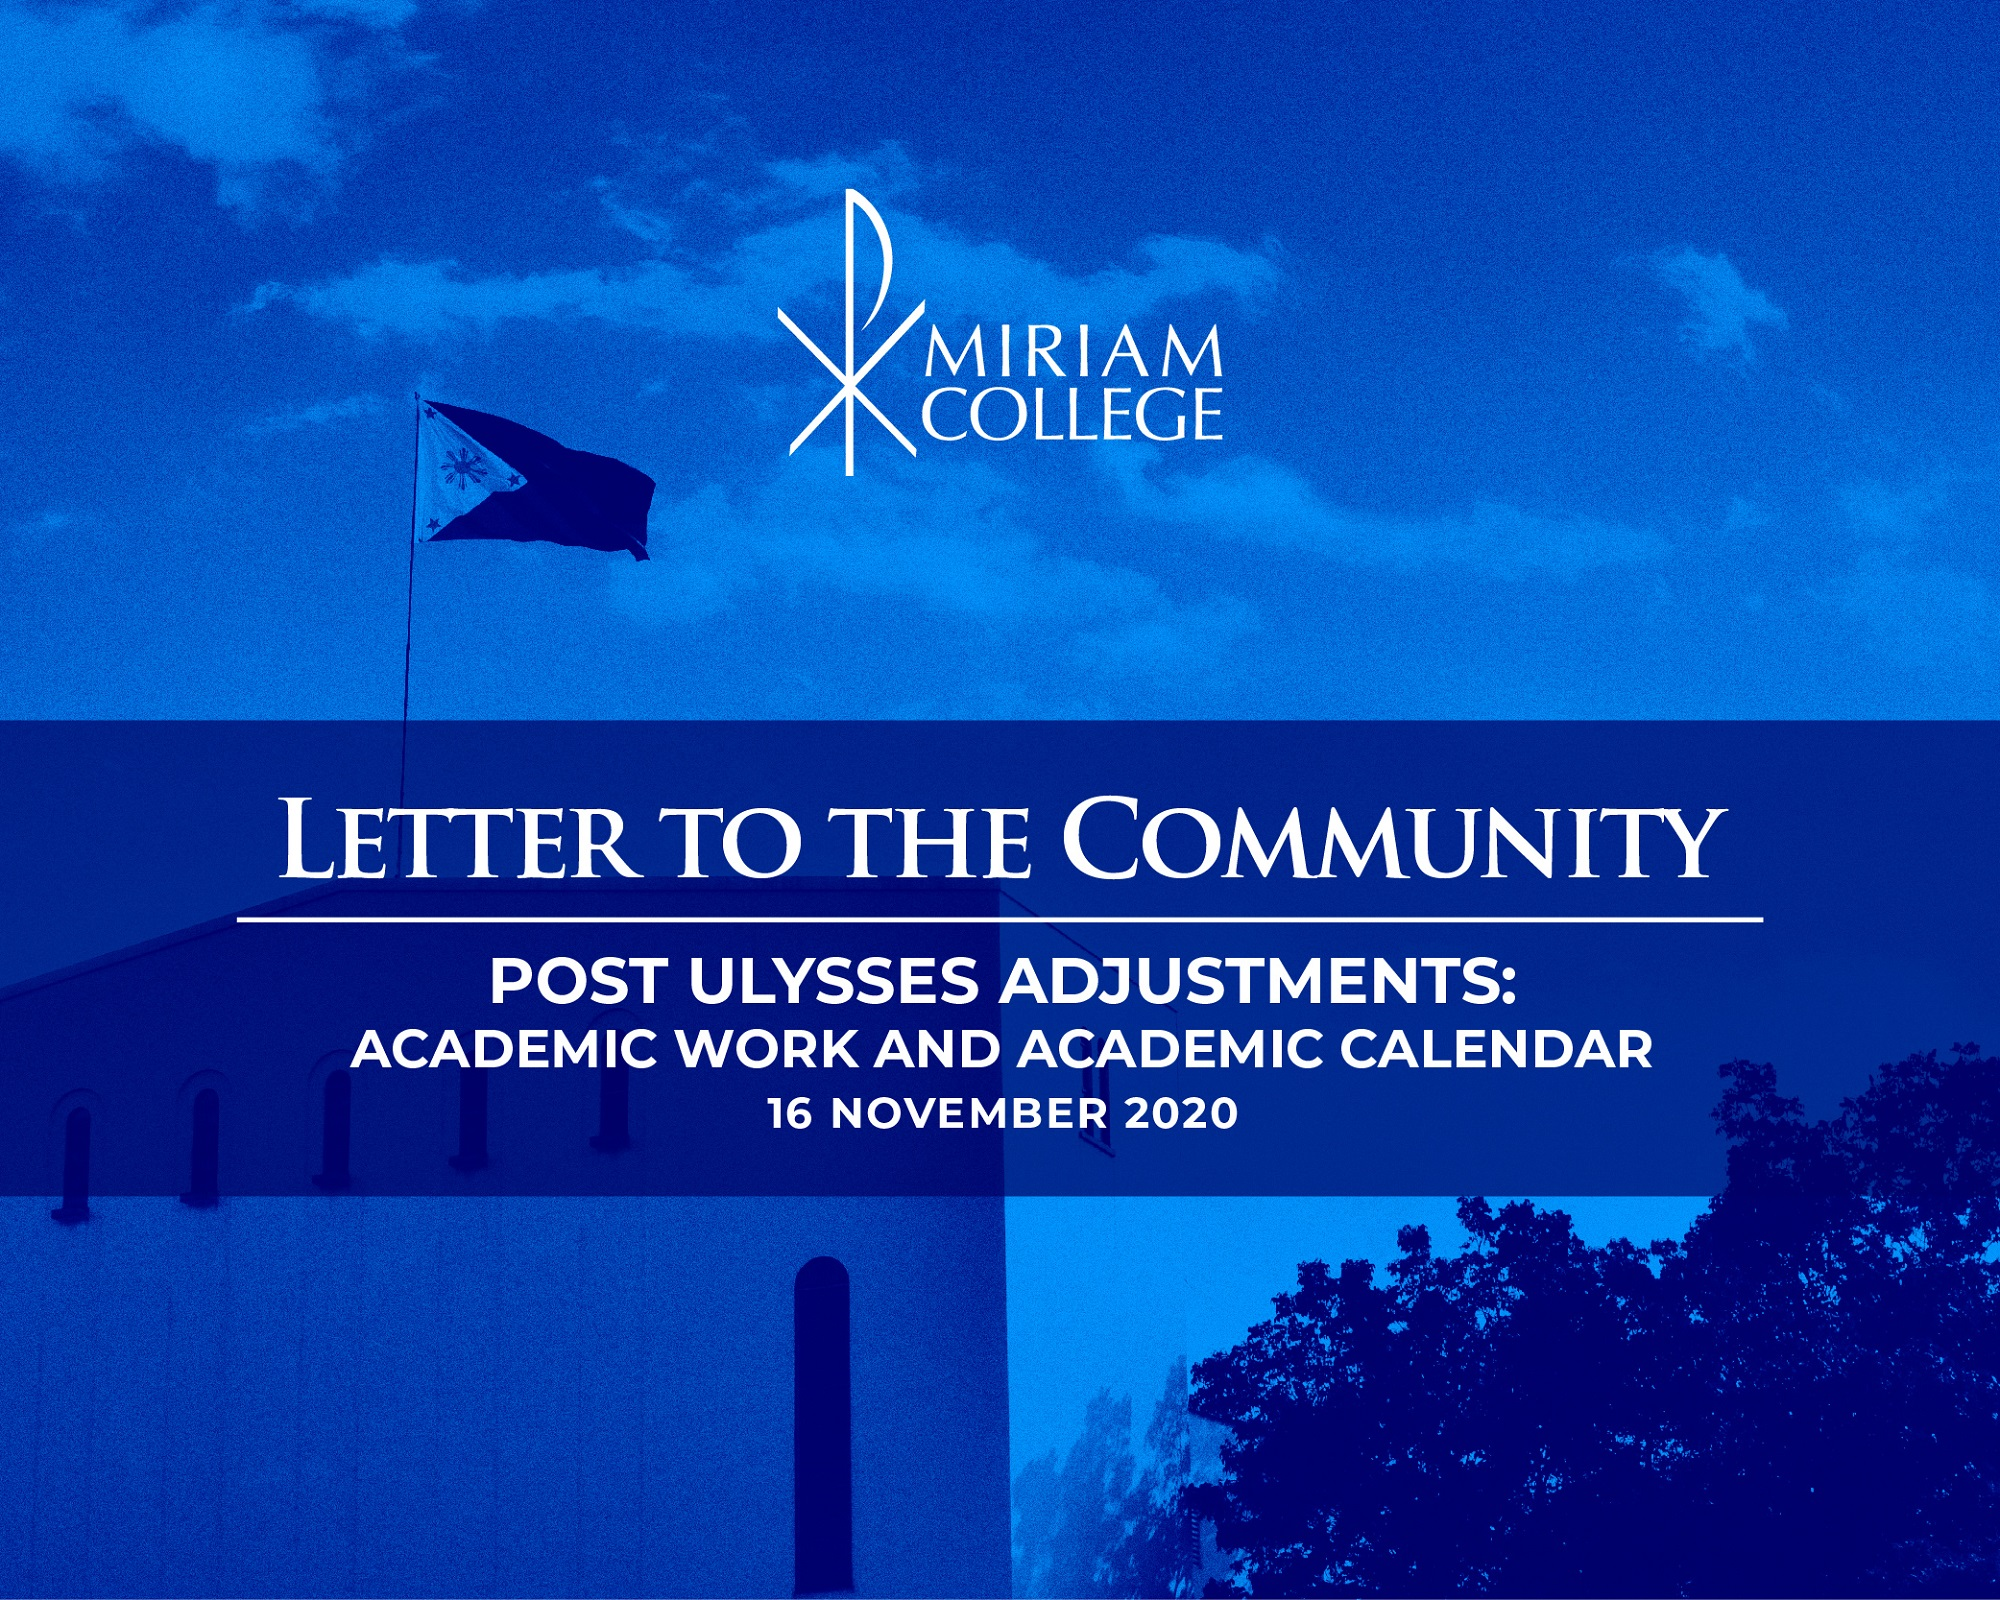 Post Ulysses Adjustments: Academic Work and Academic Calendar